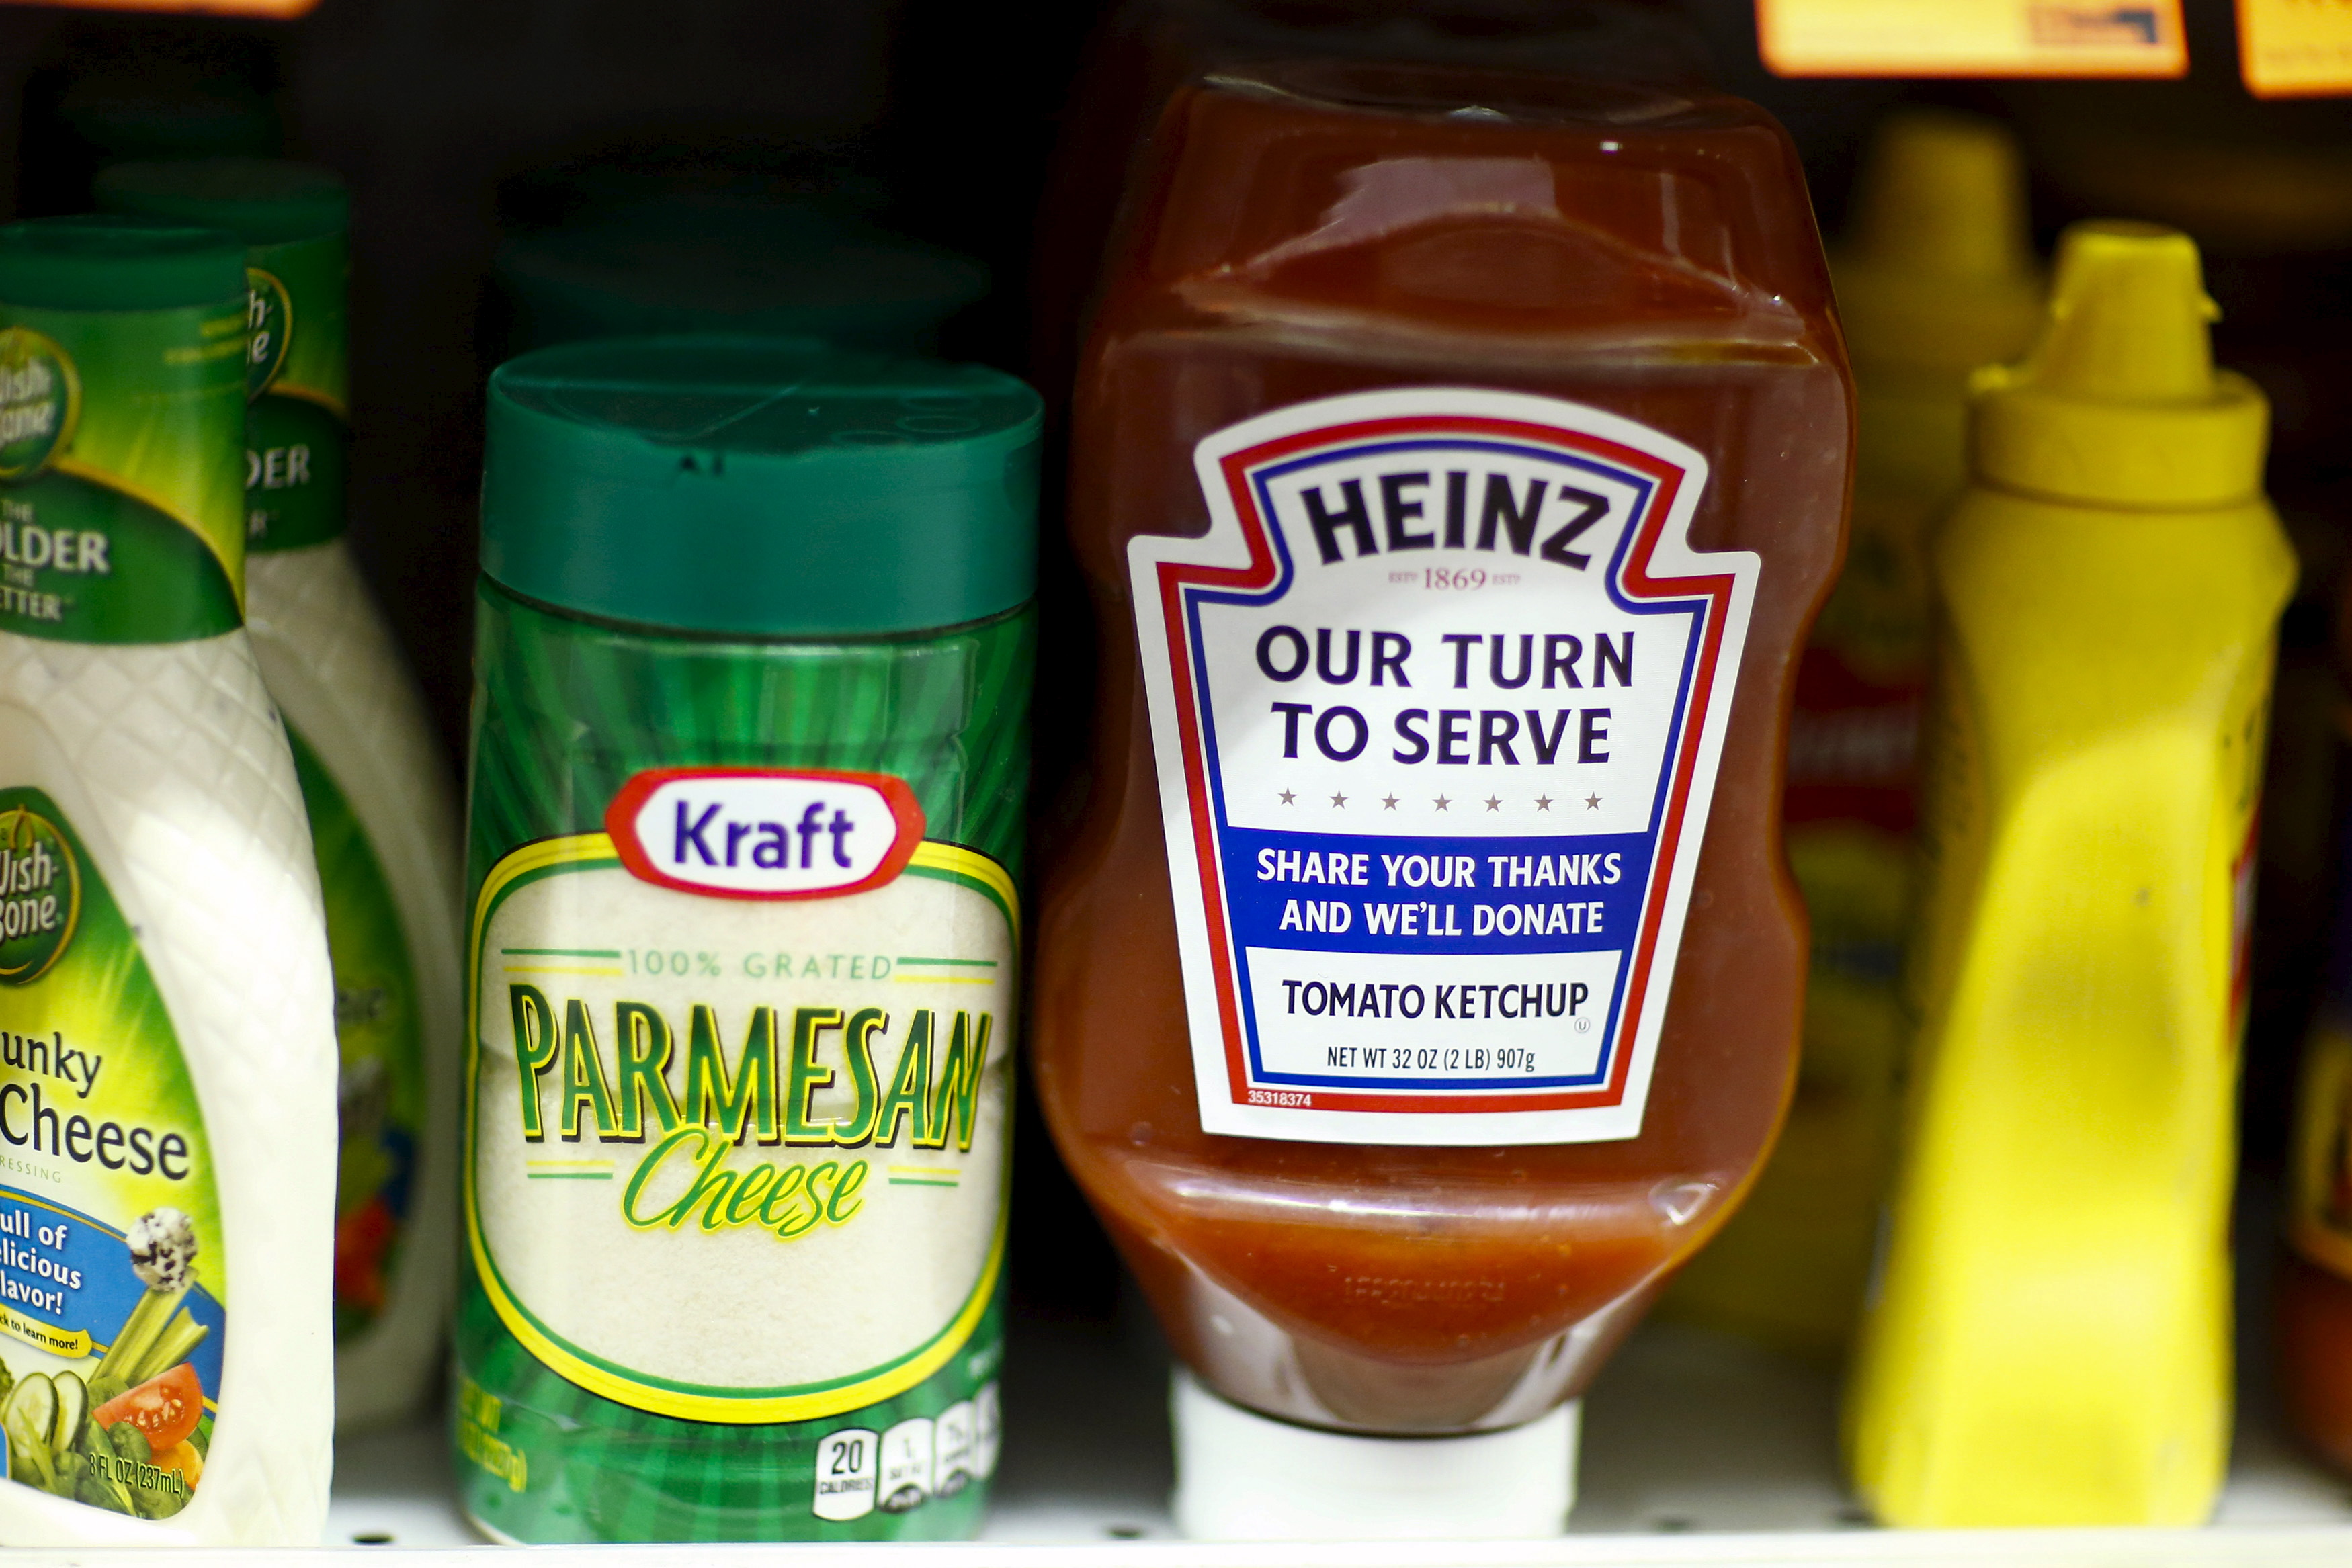 A Heinz Ketchup bottle and a bottle of Kraft parmesan cheese are displayed in a grocery store in New York March 25, 2015. Kraft Foods Group Inc, the maker of Velveeta cheese and Oscar Mayer meats, will merge with ketchup maker H.J. Heinz Co, owned by 3G Capital and Berkshire Hathaway Inc, to form the world's fifth-largest food and beverage company. REUTERS/Eduardo Munoz